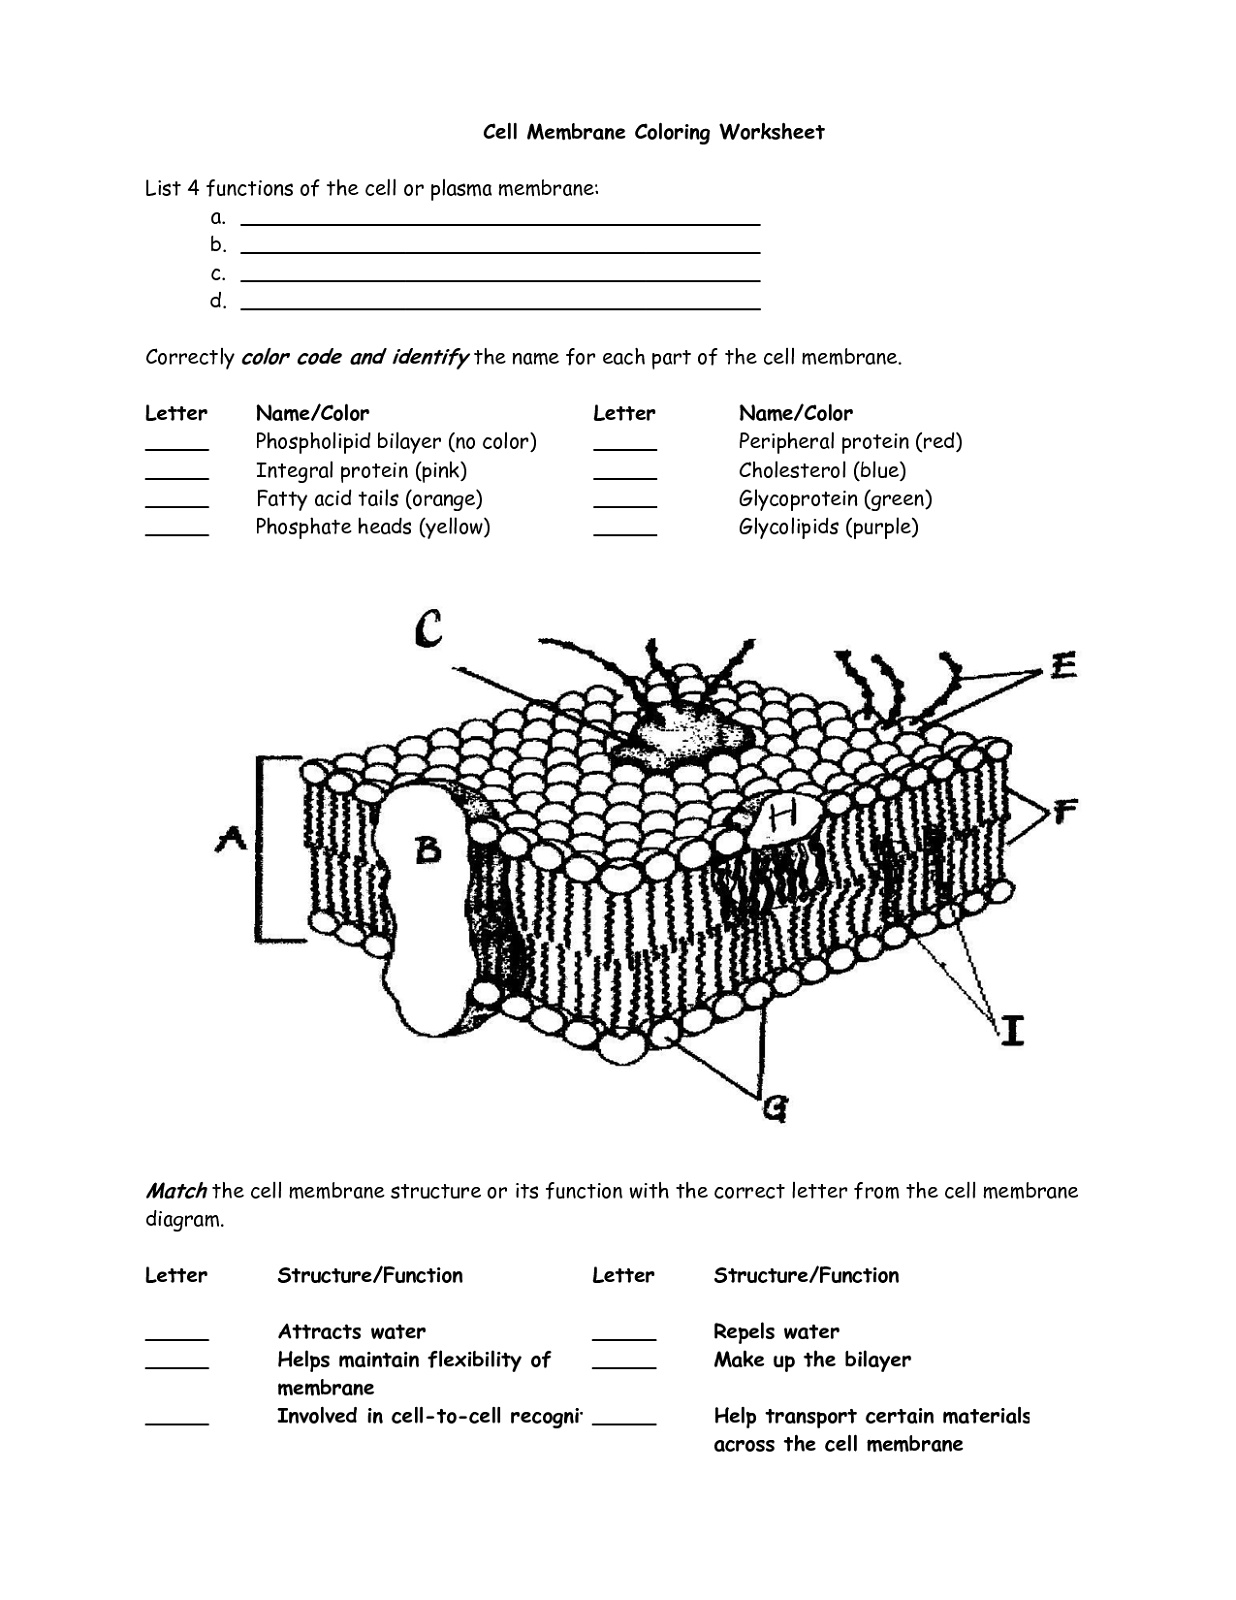 Cell Membrane Coloring Worksheet Free